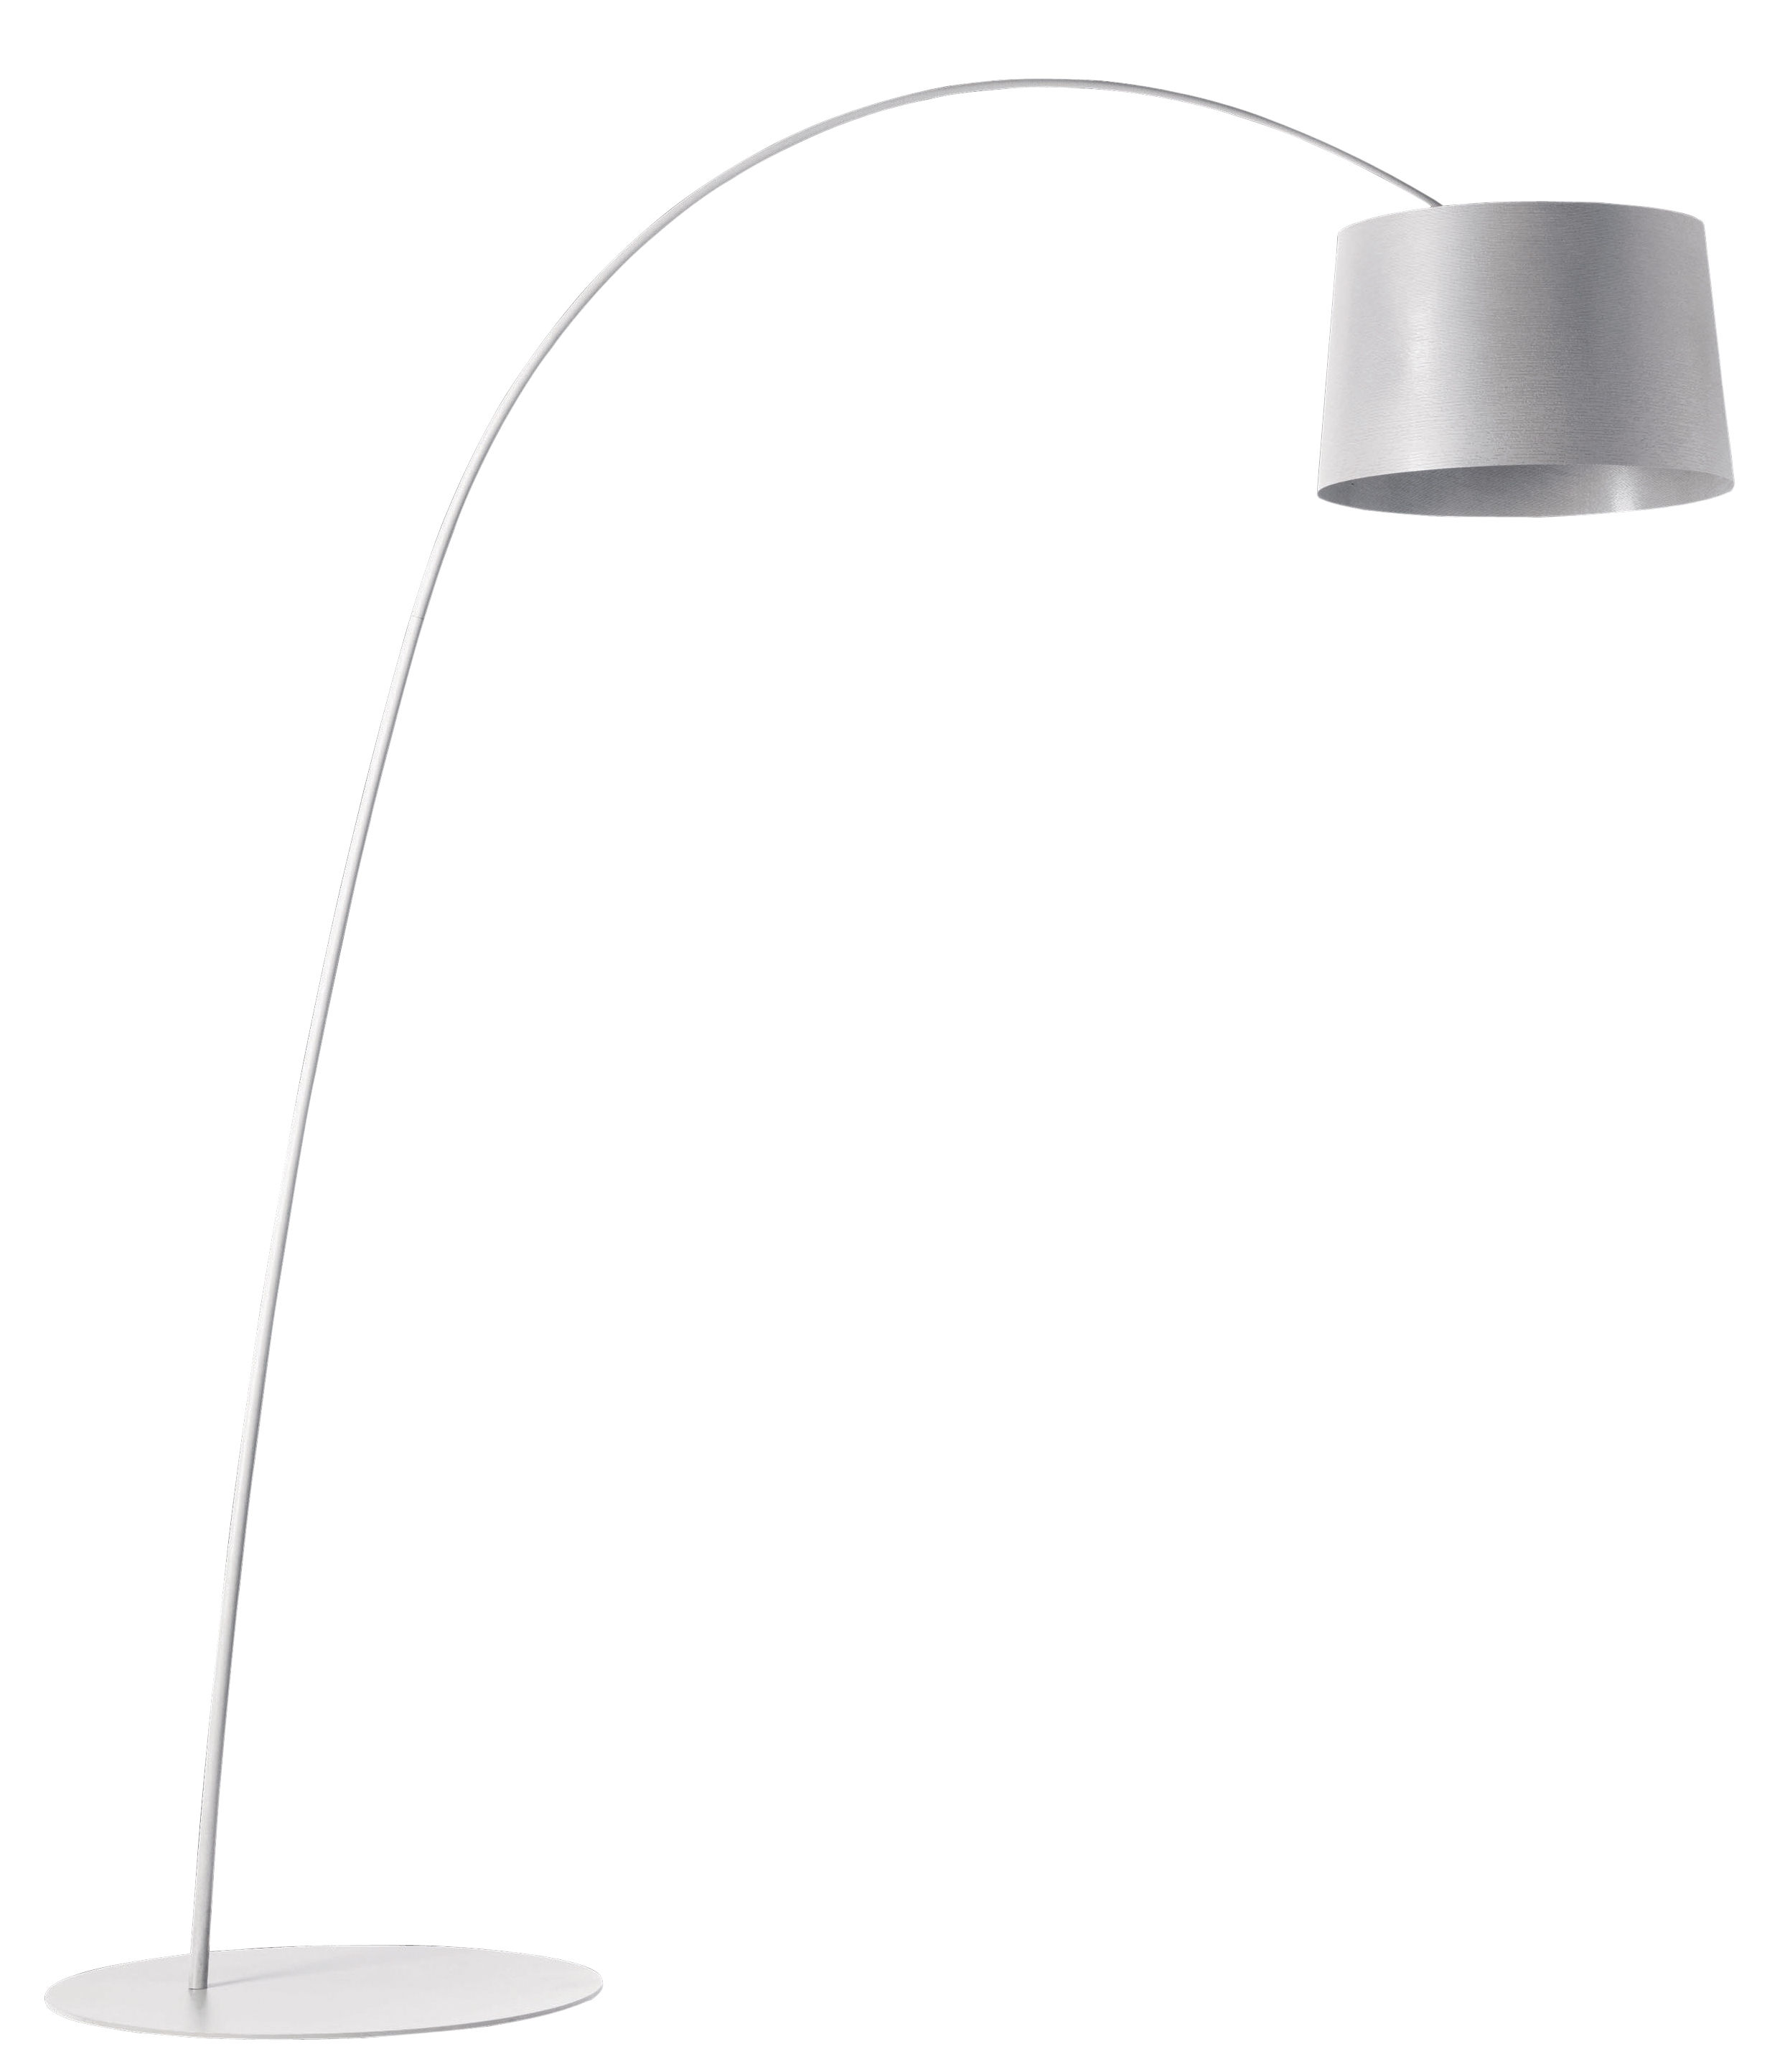 Lighting - Floor lamps - Twiggy LED Floor lamp by Foscarini - White - Composite material, Fibreglass, Varnished metal